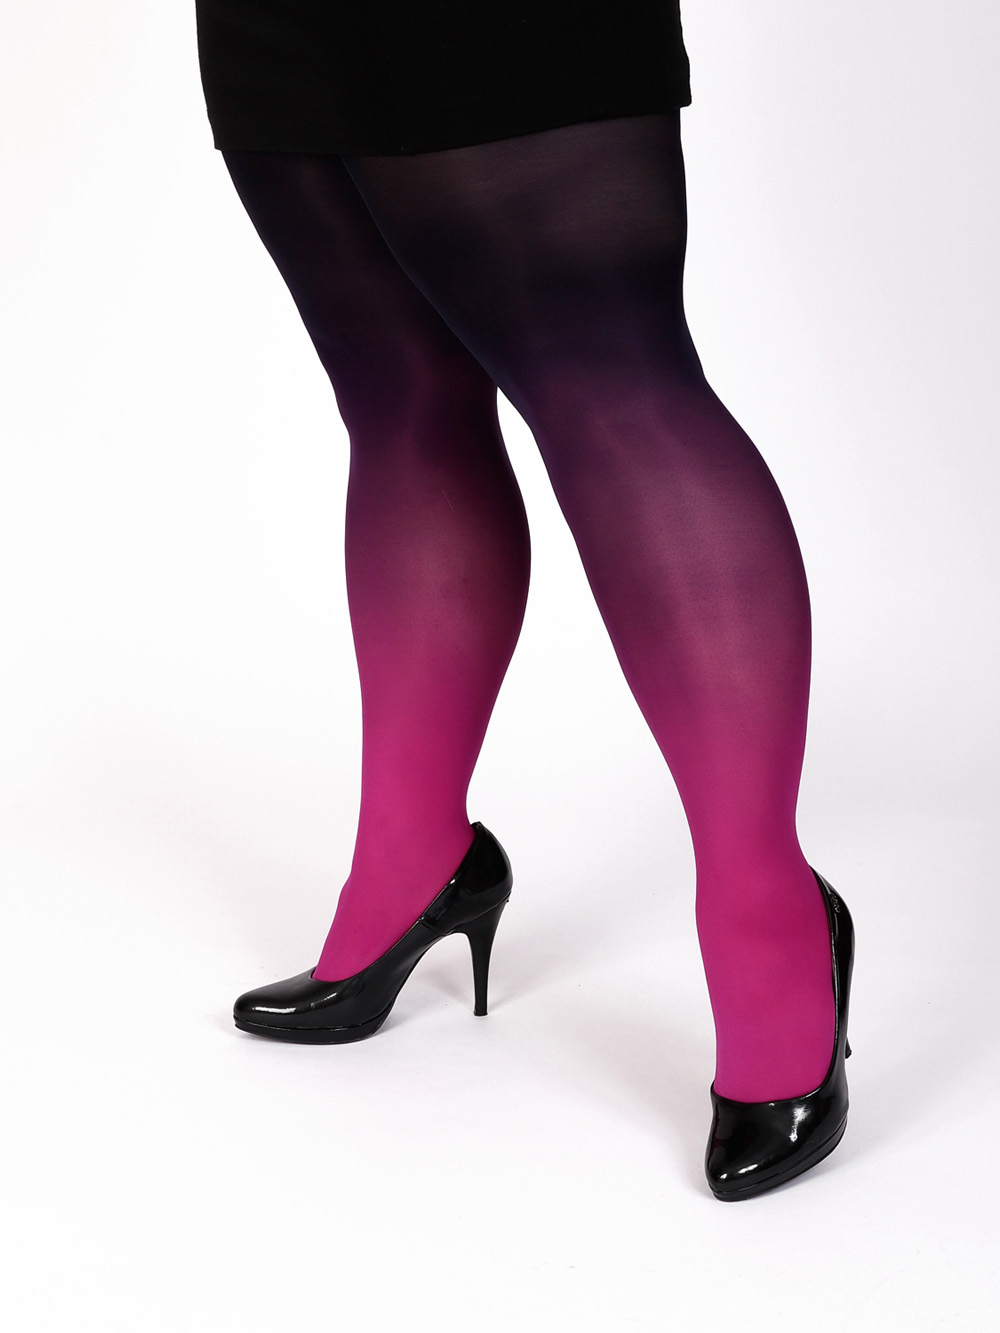 Plus Size Hot Pink-black Tights